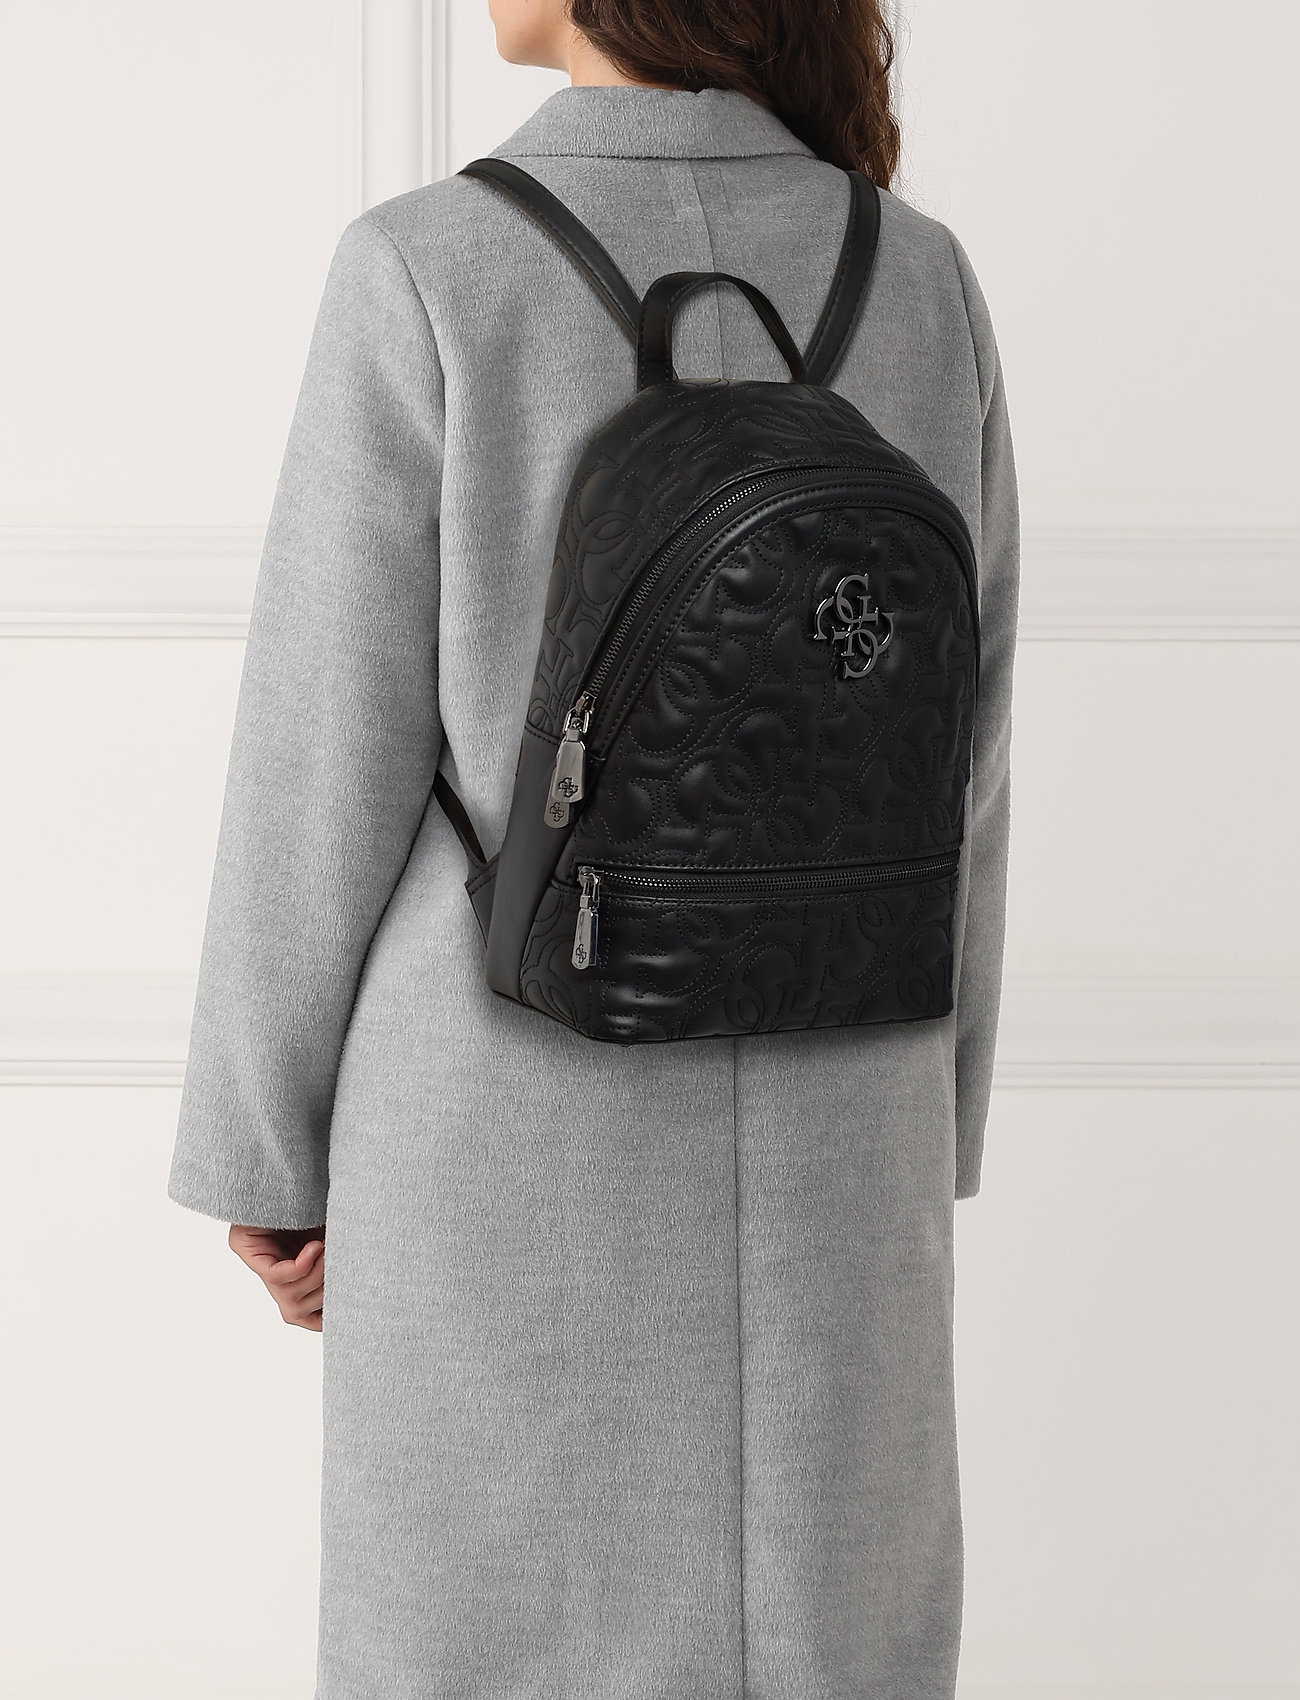 GUESS NEW WAVE BACKPACK - BLACK